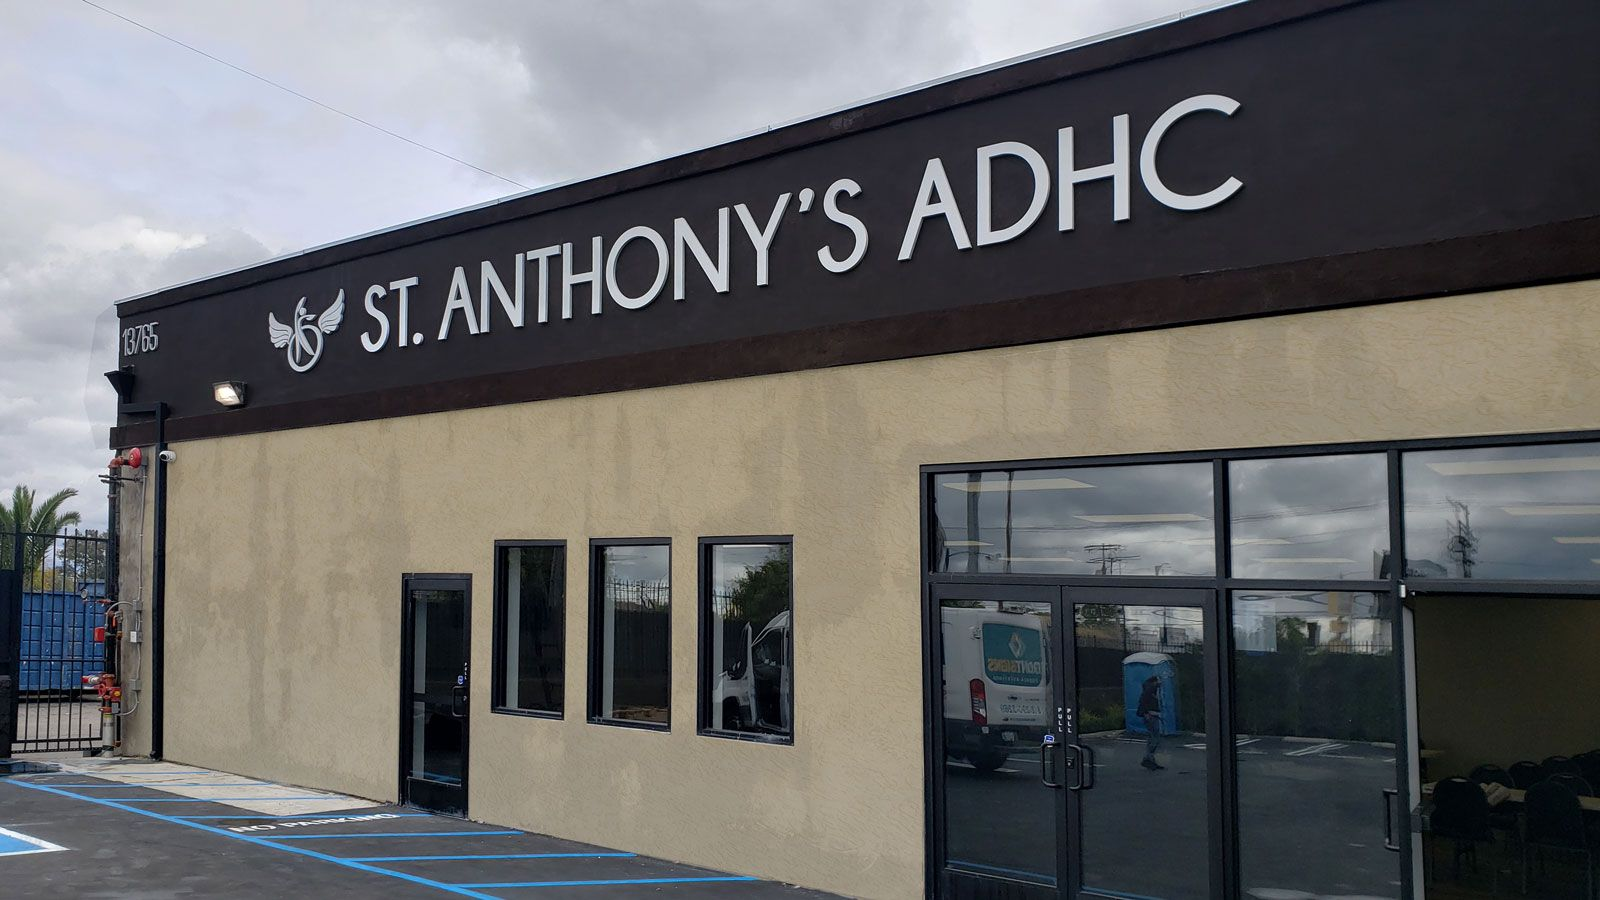 St. Anthony's ADHC 3d logo sign and letters displaying the company name made of aluminum and acrylic for storefront branding